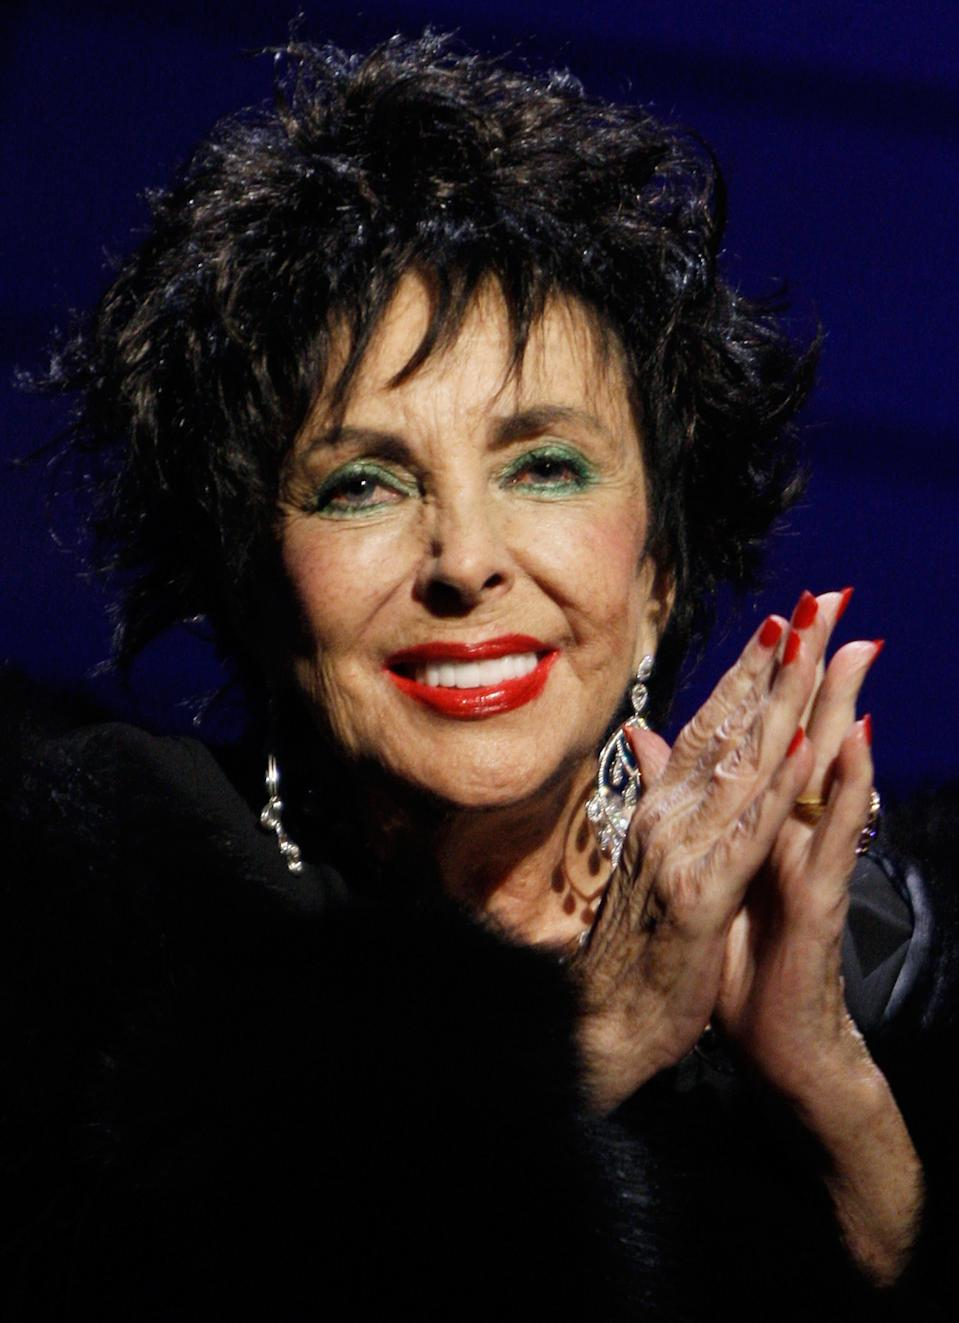 """<strong>Elizabeth Taylor (27 February 1932 to 23 March 2011)</strong> <br><br>Film stars don't get much bigger than Elizabeth """"Liz"""" Taylor, a true heavyweight on the silver screen over the last 60 years. Most known for her starring roles in 'National Velvet', 'Cat on a Hot Tin Roof', 'Cleopatra' and 'Who's Afraid of Virginia Woolf?', Taylor became an international sex symbol and was known for her glamorous lifestyle.<br><br>Born in London to American parents, Taylor moved to Los Angeles at an early age where she attracted attention from a number of film studios. Impressed with her looks, Universal signed Taylor up for a seven-year contract before she had even turned nine. This would last just one film, Taylor moved on to MGM who cast her in 'Lassie Come Home' and then 'National Velvet' – a film that propelled Taylor into the spotlight aged just 12.<br><br>Making the move to adult roles, Taylor became a Hollywood star. She hit her peak in the late 1950s – with four consecutive Oscar nominations from 1958 to 1961. Taylor picked up an Oscar for her performance in 'Butterfield 8' and a second for 'Who's Afraid of Virginia Woolf' in 1966 , though was perhaps best known for playing Cleopatra in the blockbuster film of the same name.<br><br>Taylor's personal life also dominated the headlines, she married eight times over the 79 years of her life including to 'Cleopatra' co-star Richard Burton. <br><br>From the 1980s onward Taylor took to campaigning – championing, founding and promoting HIV and AIDS programmes."""